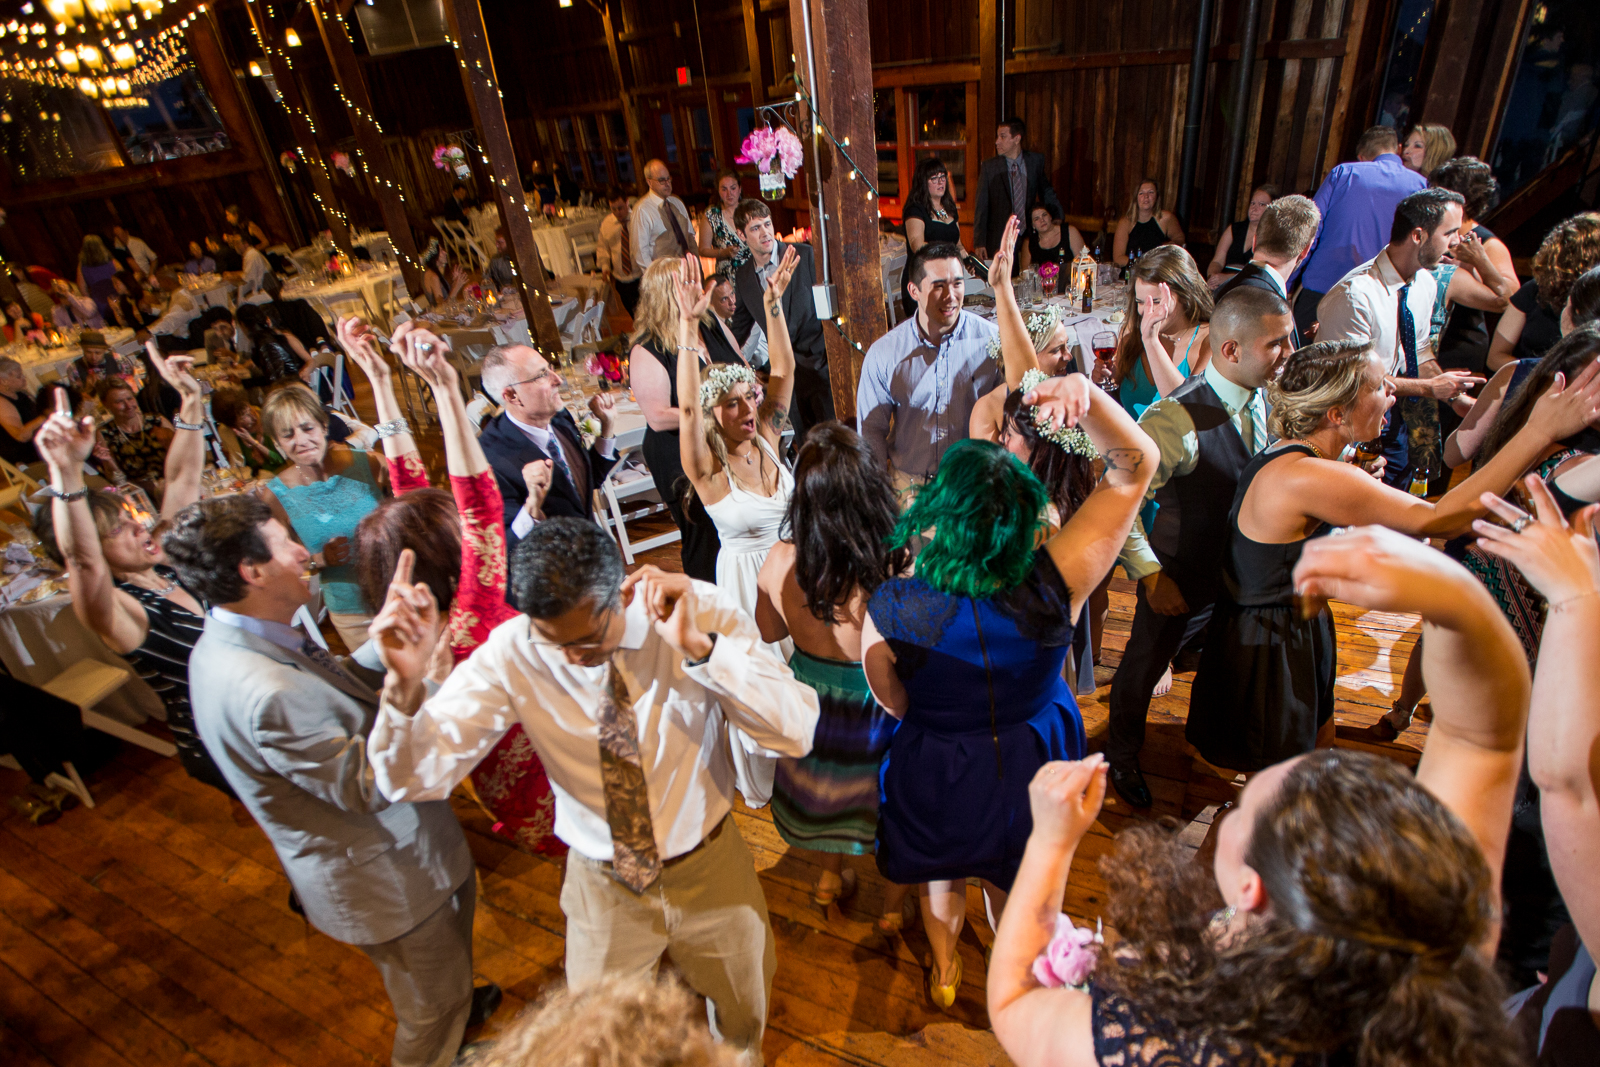 Four_Wings_Photography_Wedding_Red_Barn_at_Hampshire_College-51.jpg